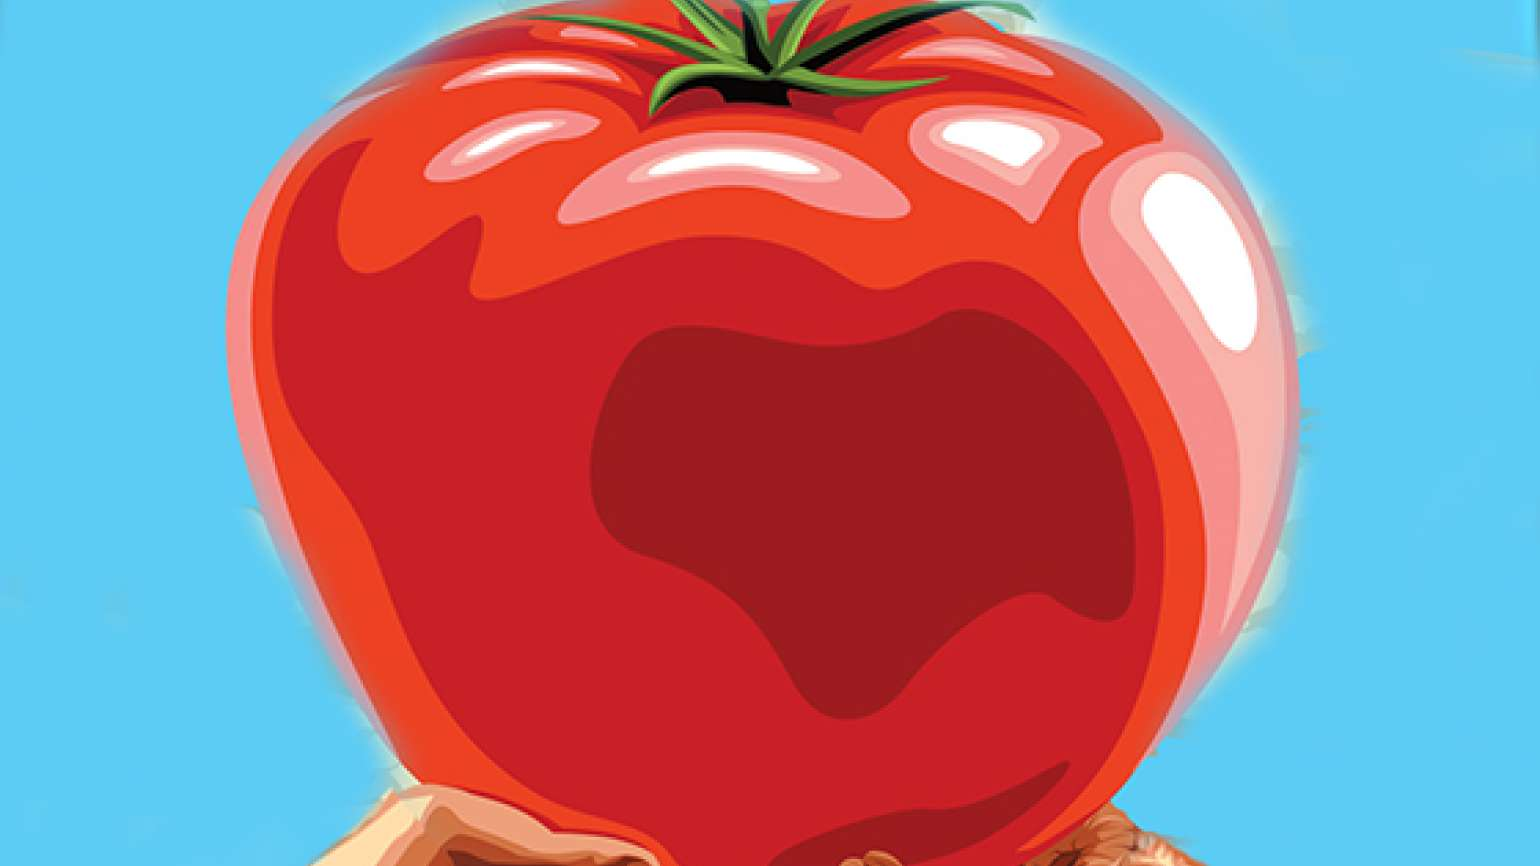 An artist's rendering of a giant tomato